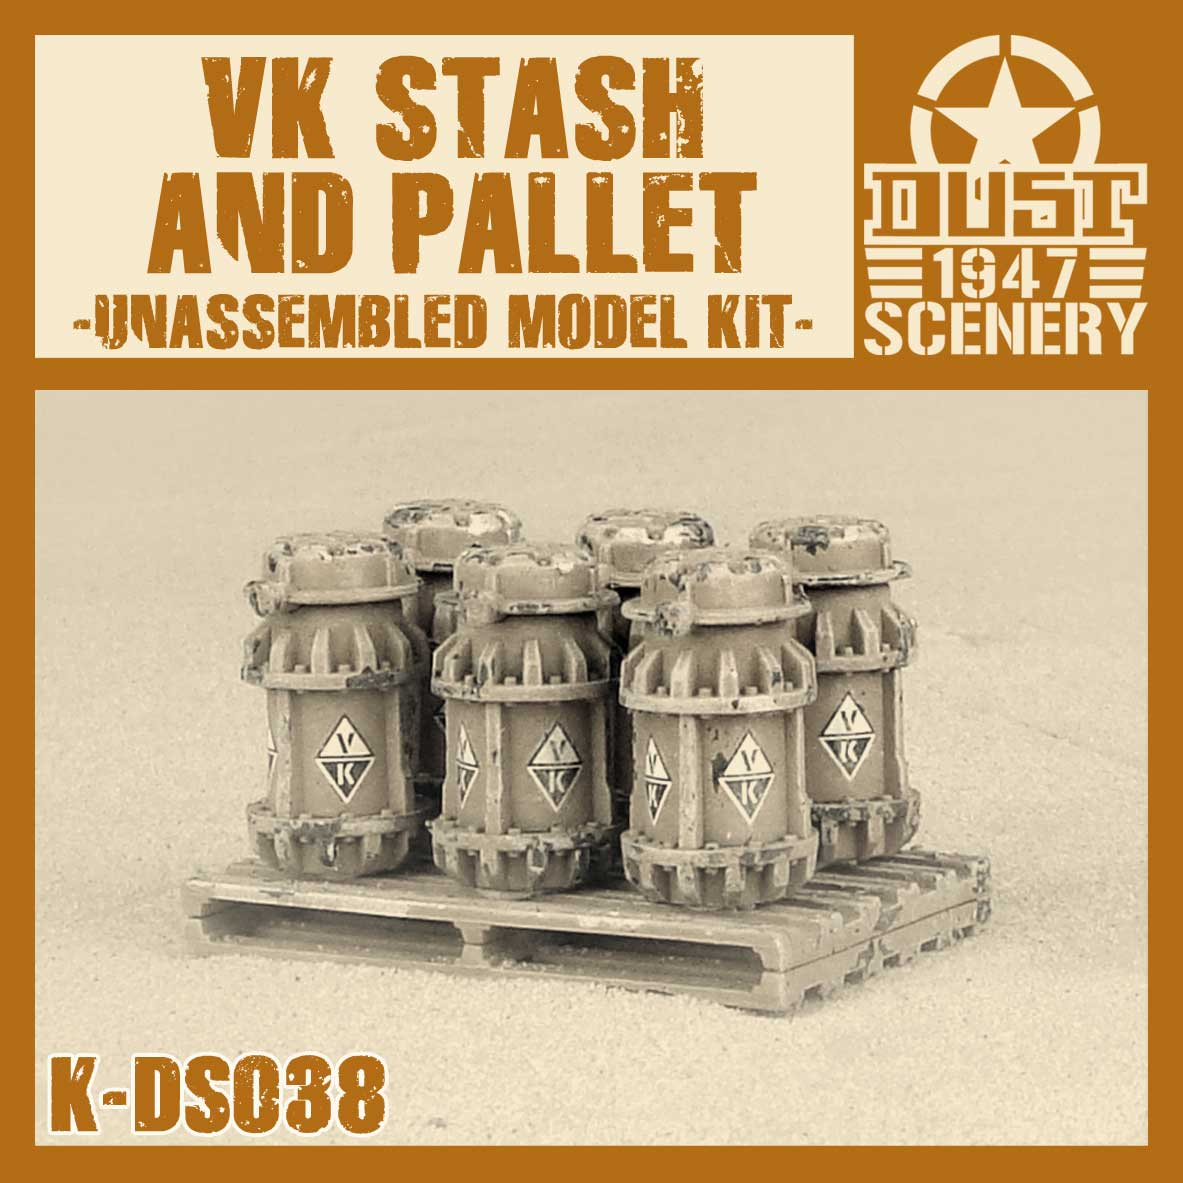 VK Stash Kit